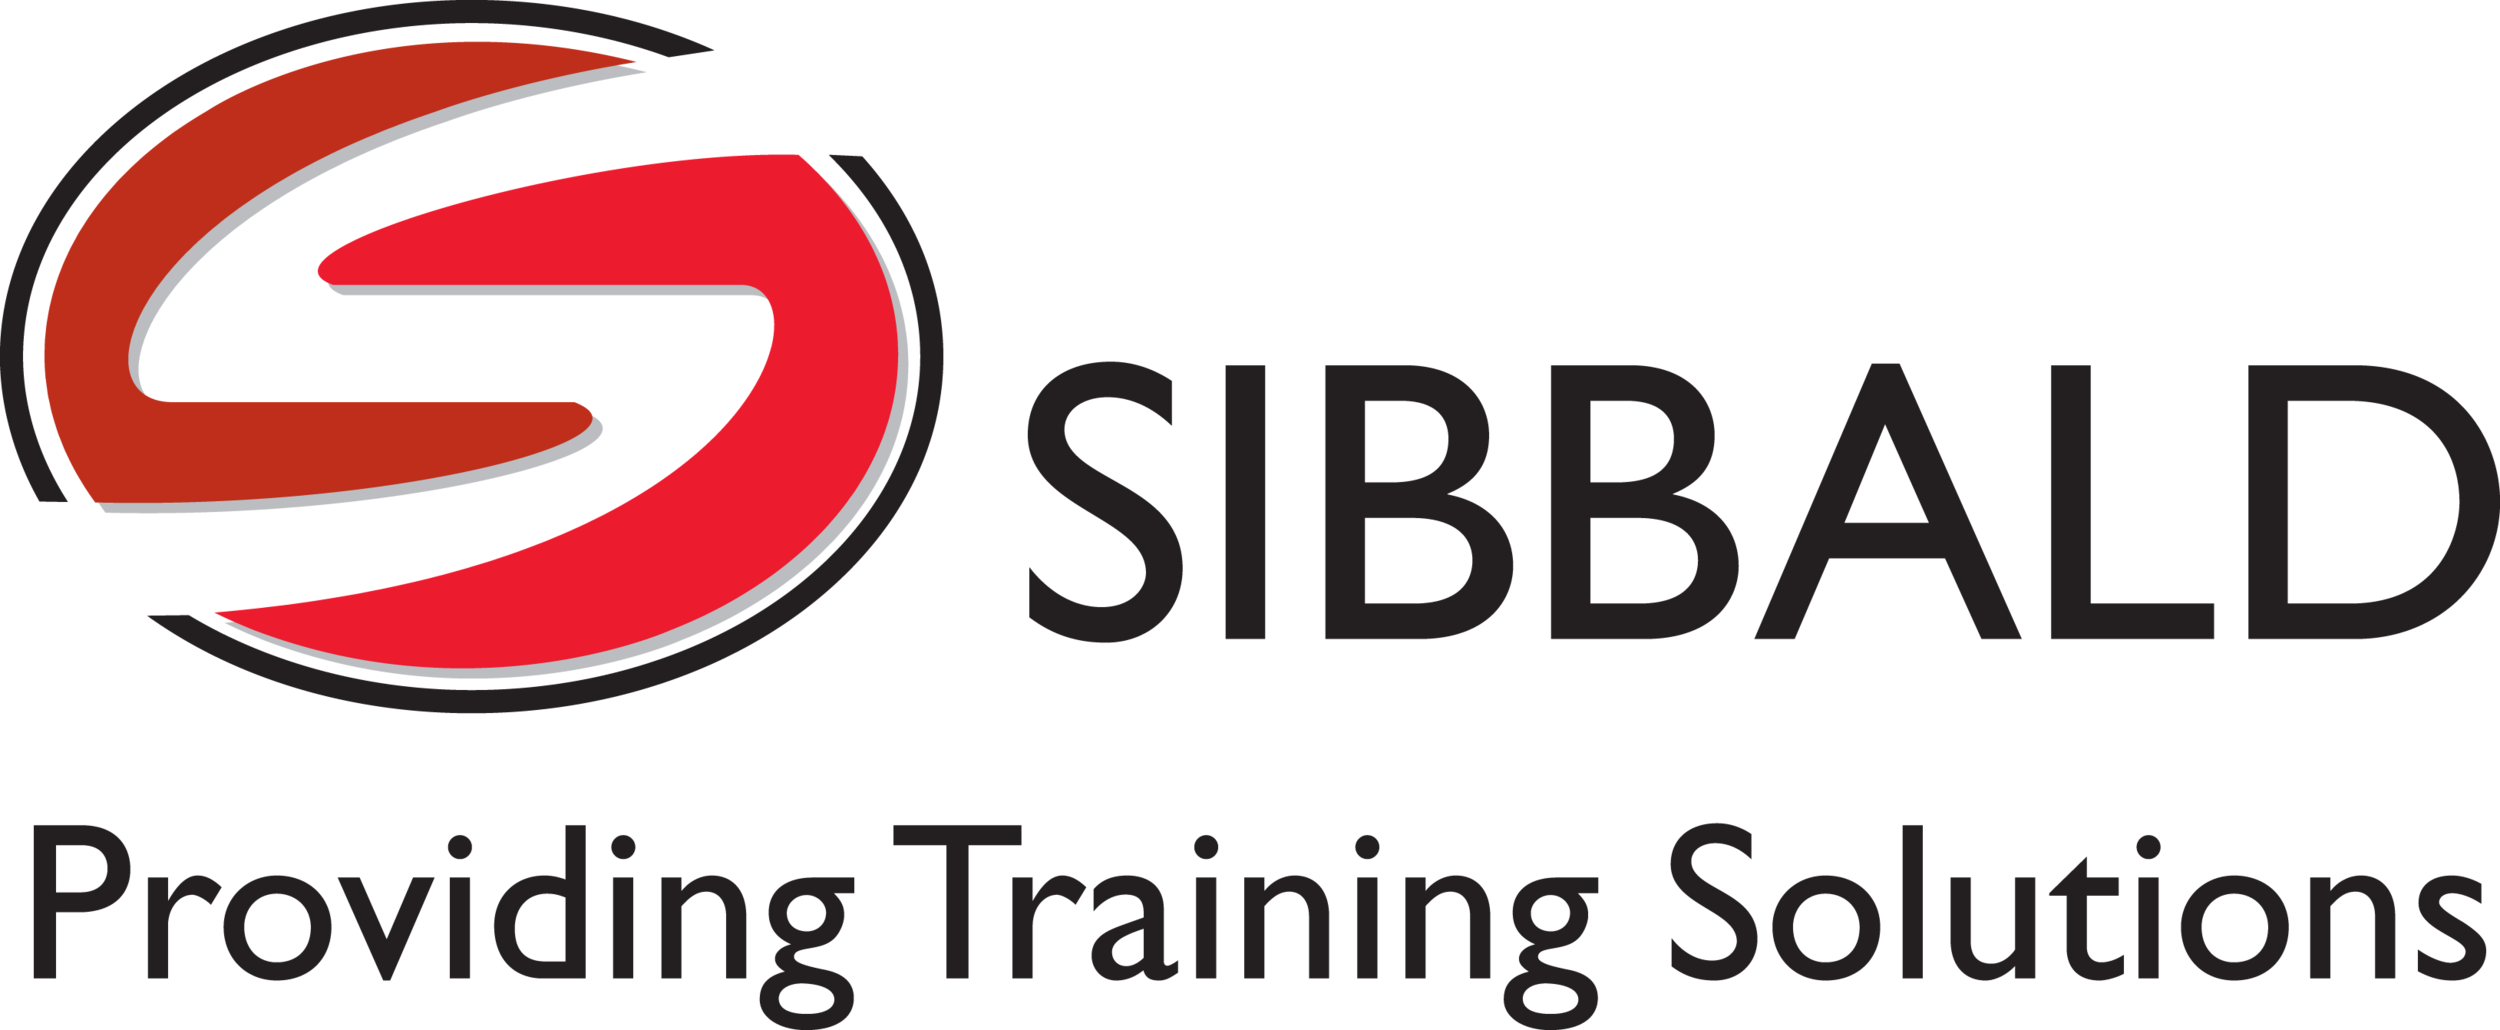 Sibbald logo - isolated.png